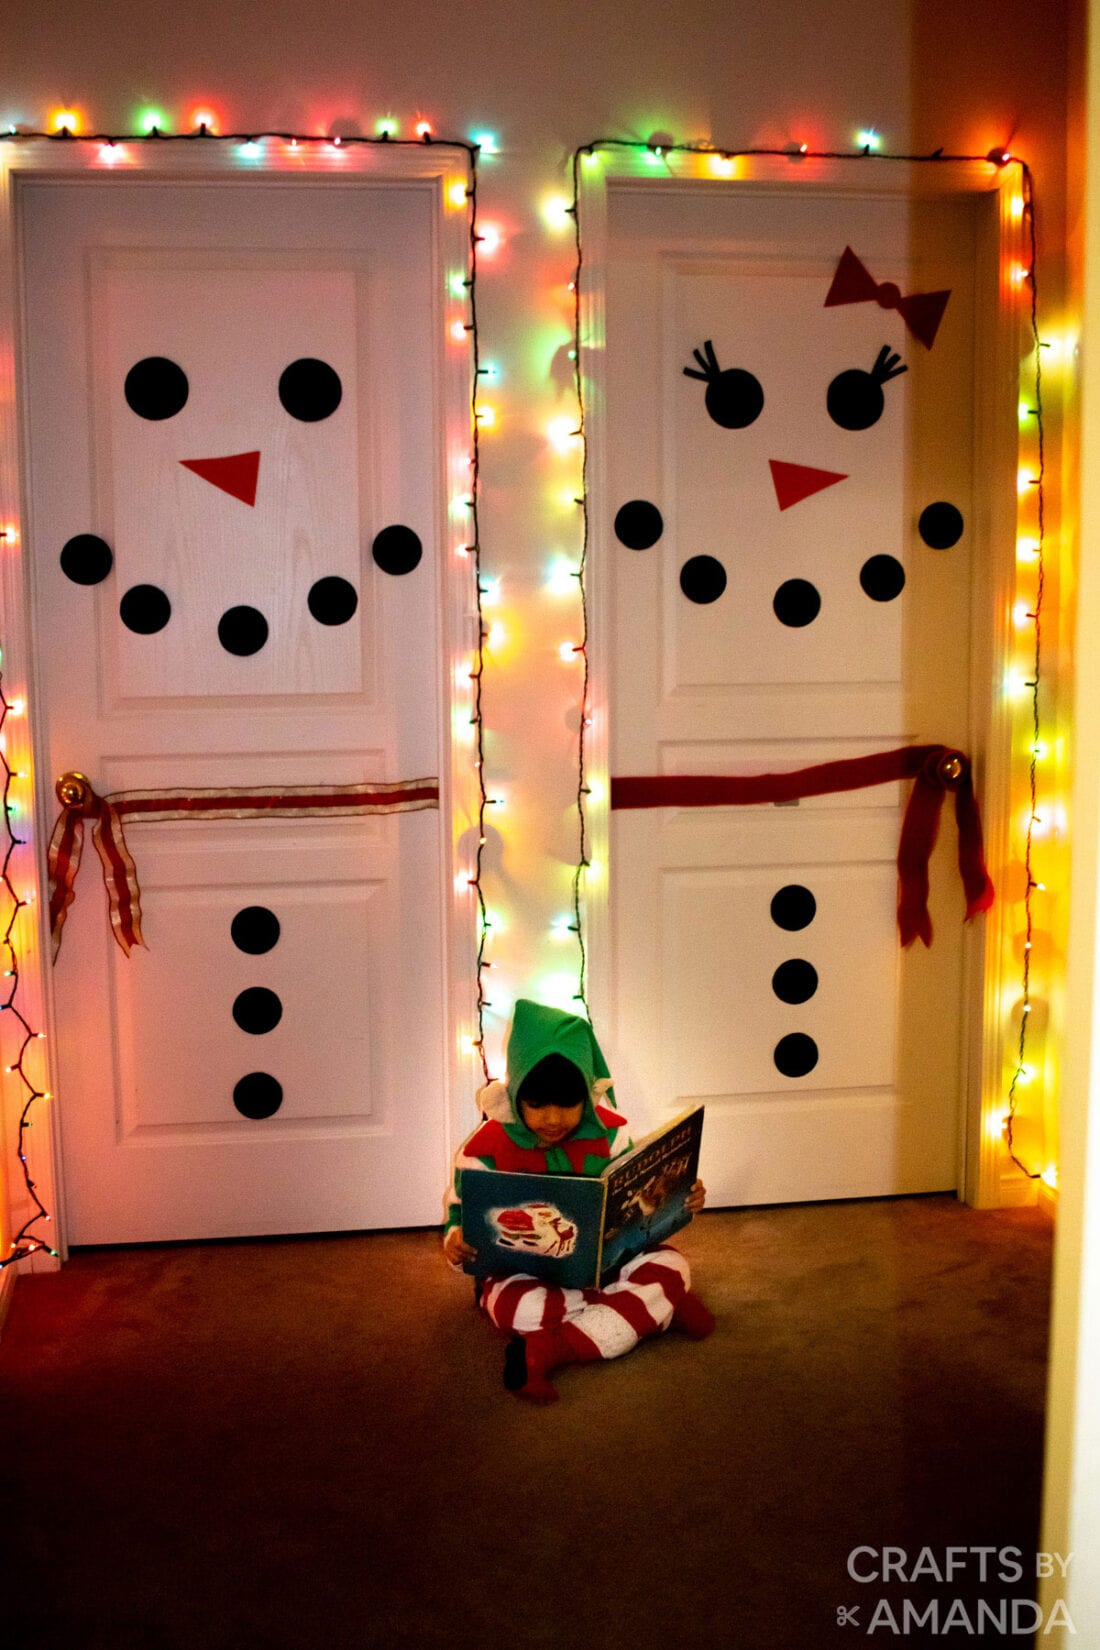 child reading book with snowman decorated doors in background